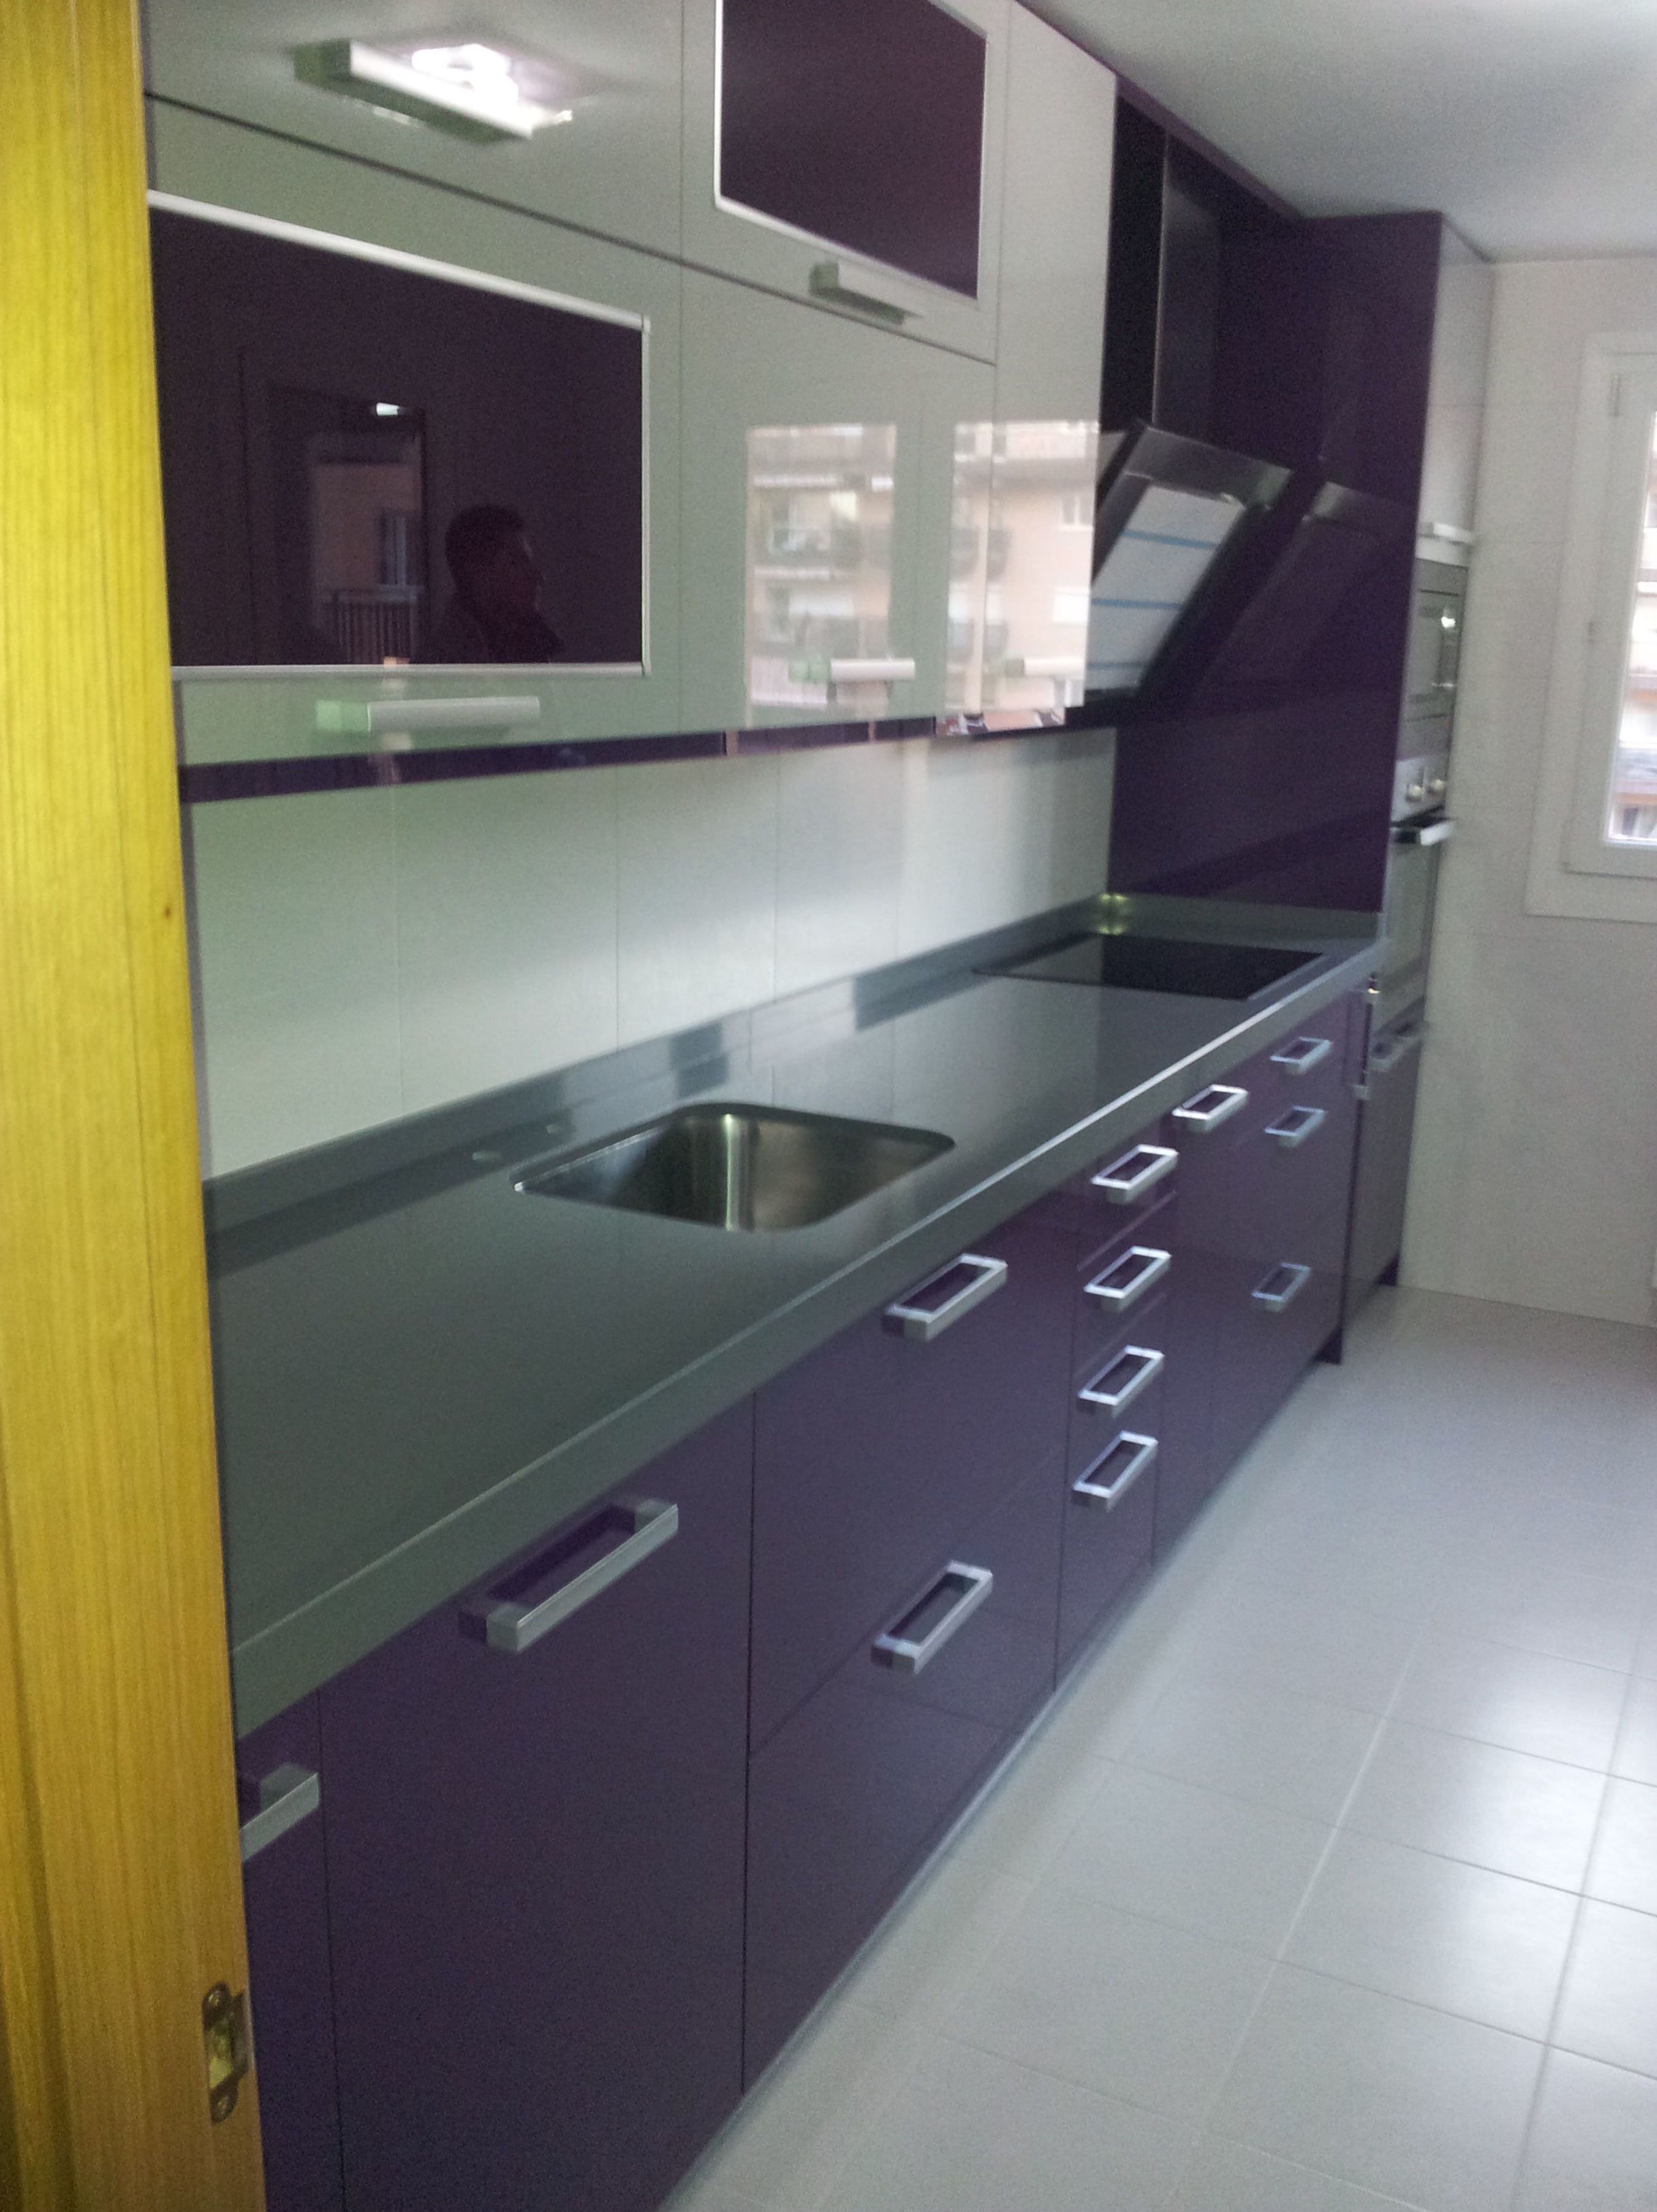 Cocina en estratificado color purpura y gris